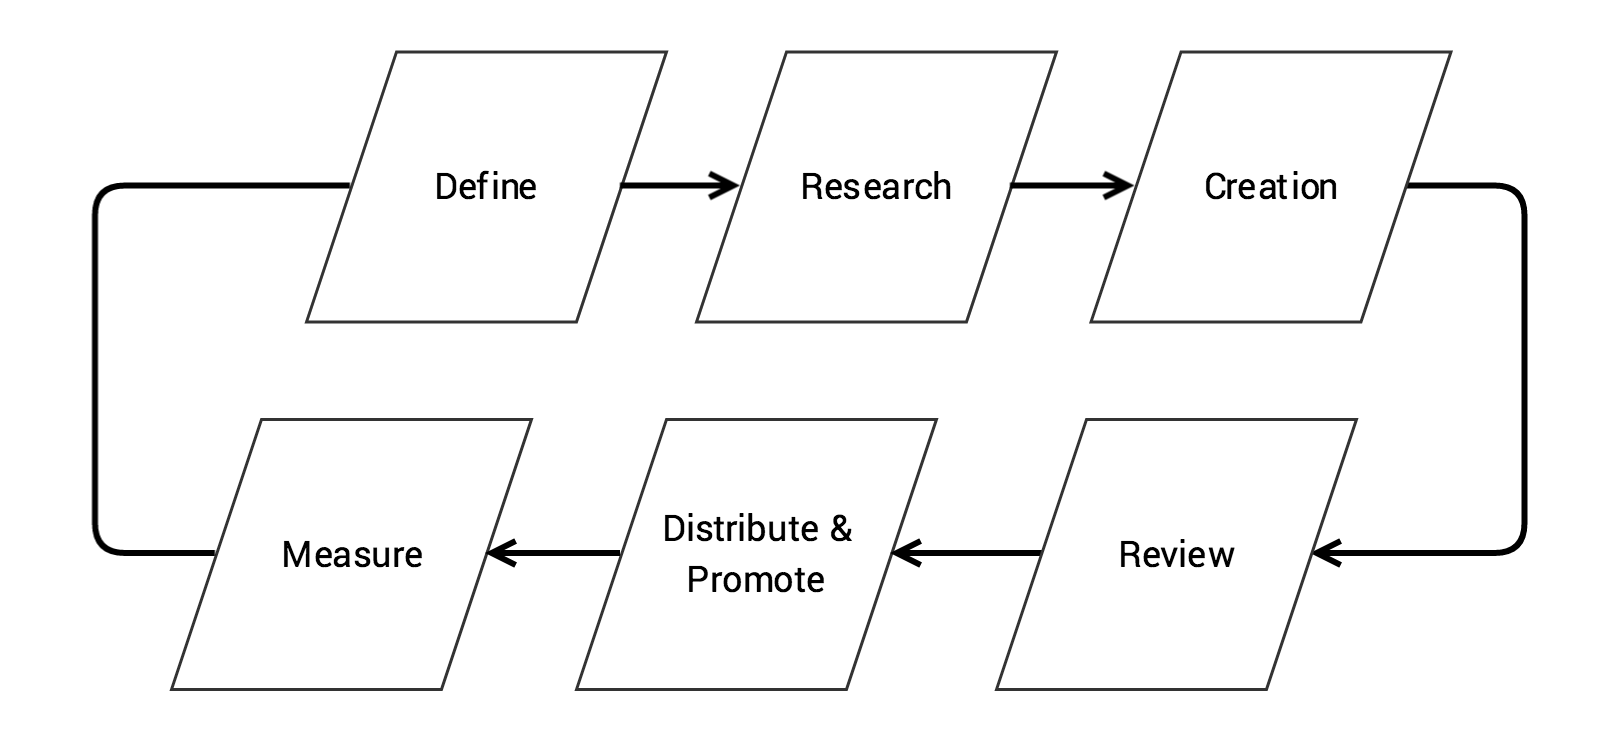 A flowchart showing six stages starting with define and moving to research, creation, review, distribute and promote and finally, measure.